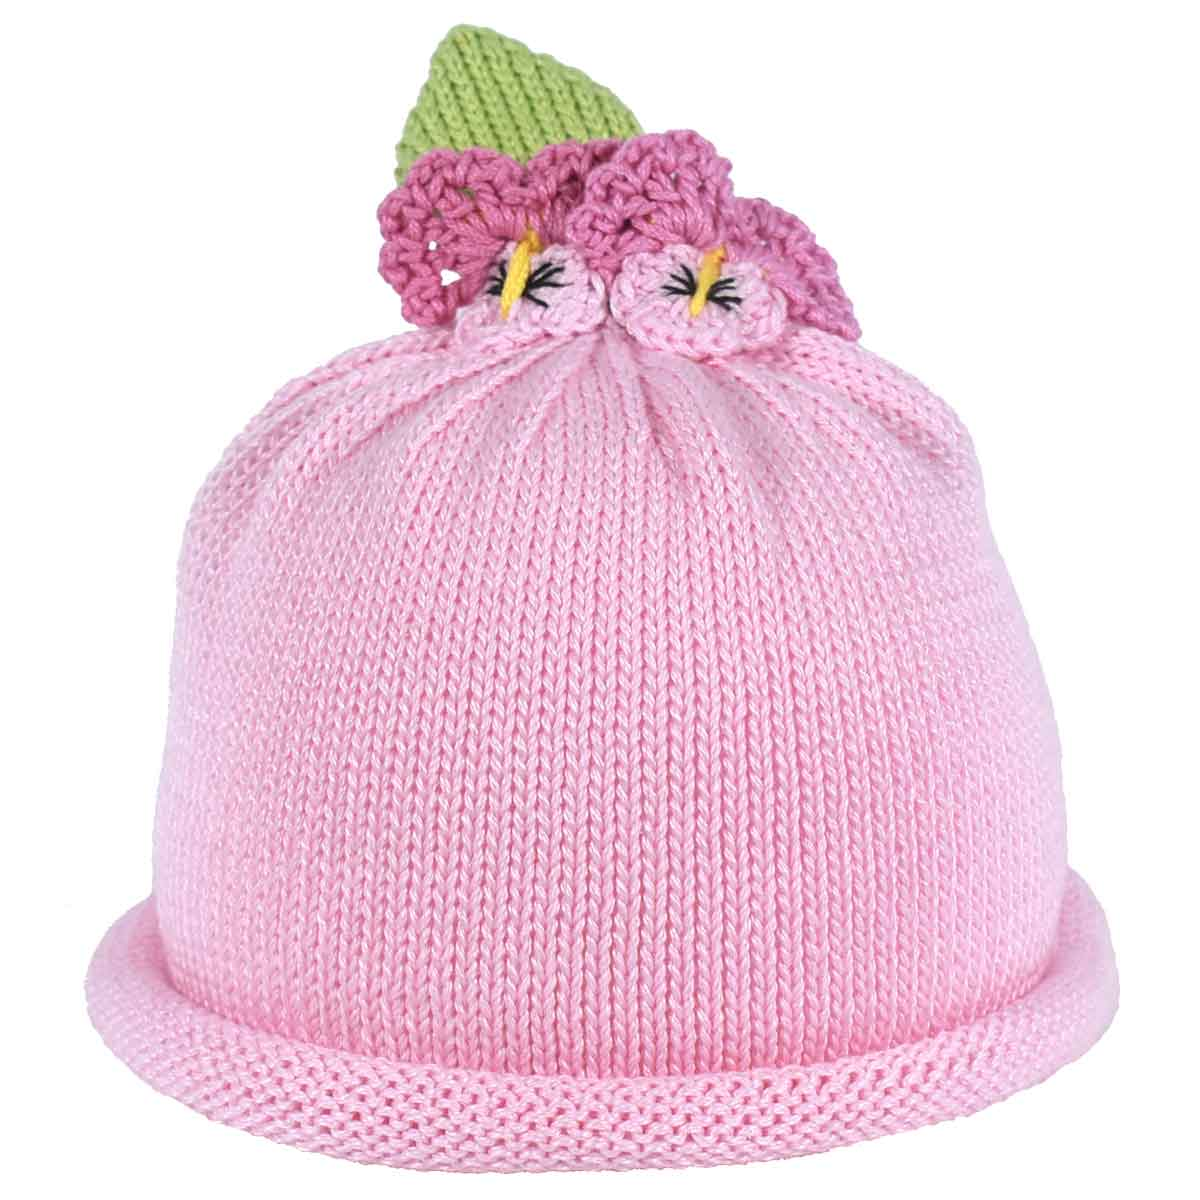 Pretty pink pansy flower on pink knit hat margareta horn design pretty pink pansy flower mightylinksfo